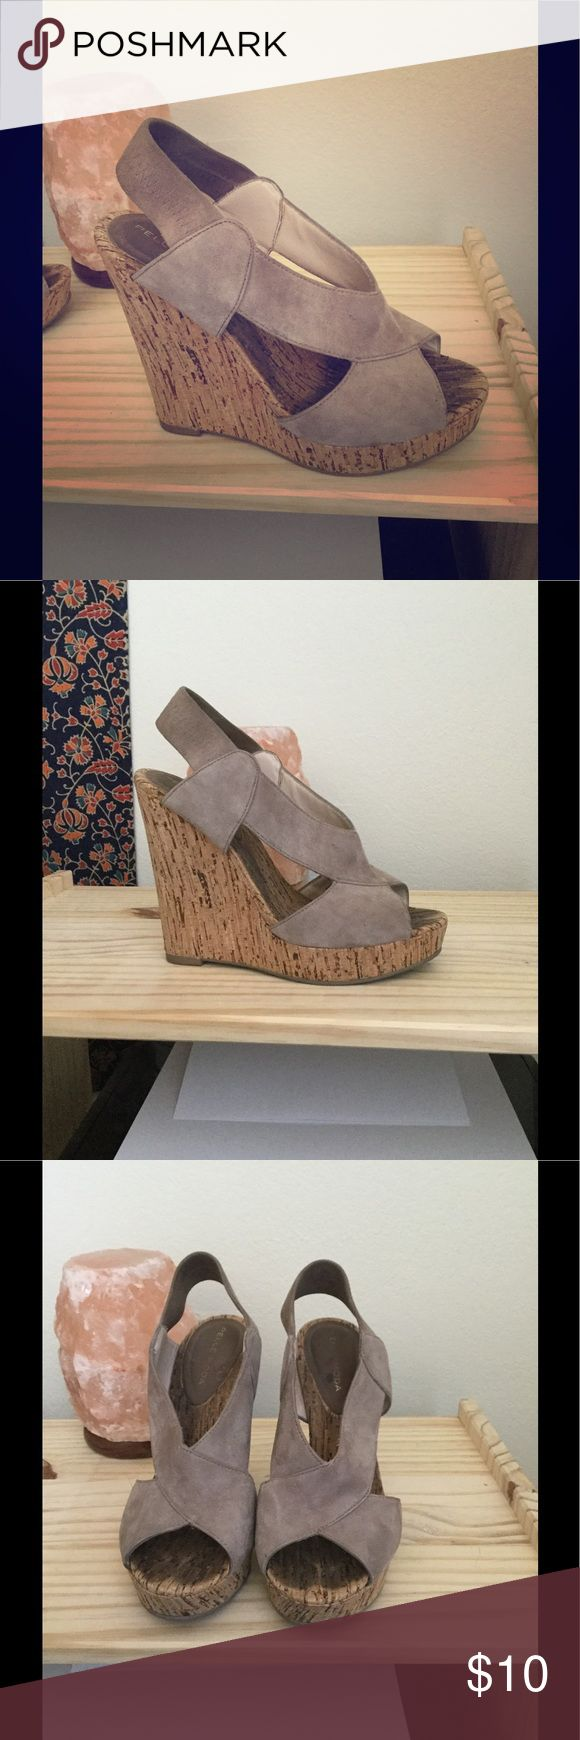 Seychelles Wedges Great mauve color that goes with any things! Very comfortable. Gently worn with some show of wear but still in great shape! Seychelles Shoes Wedges